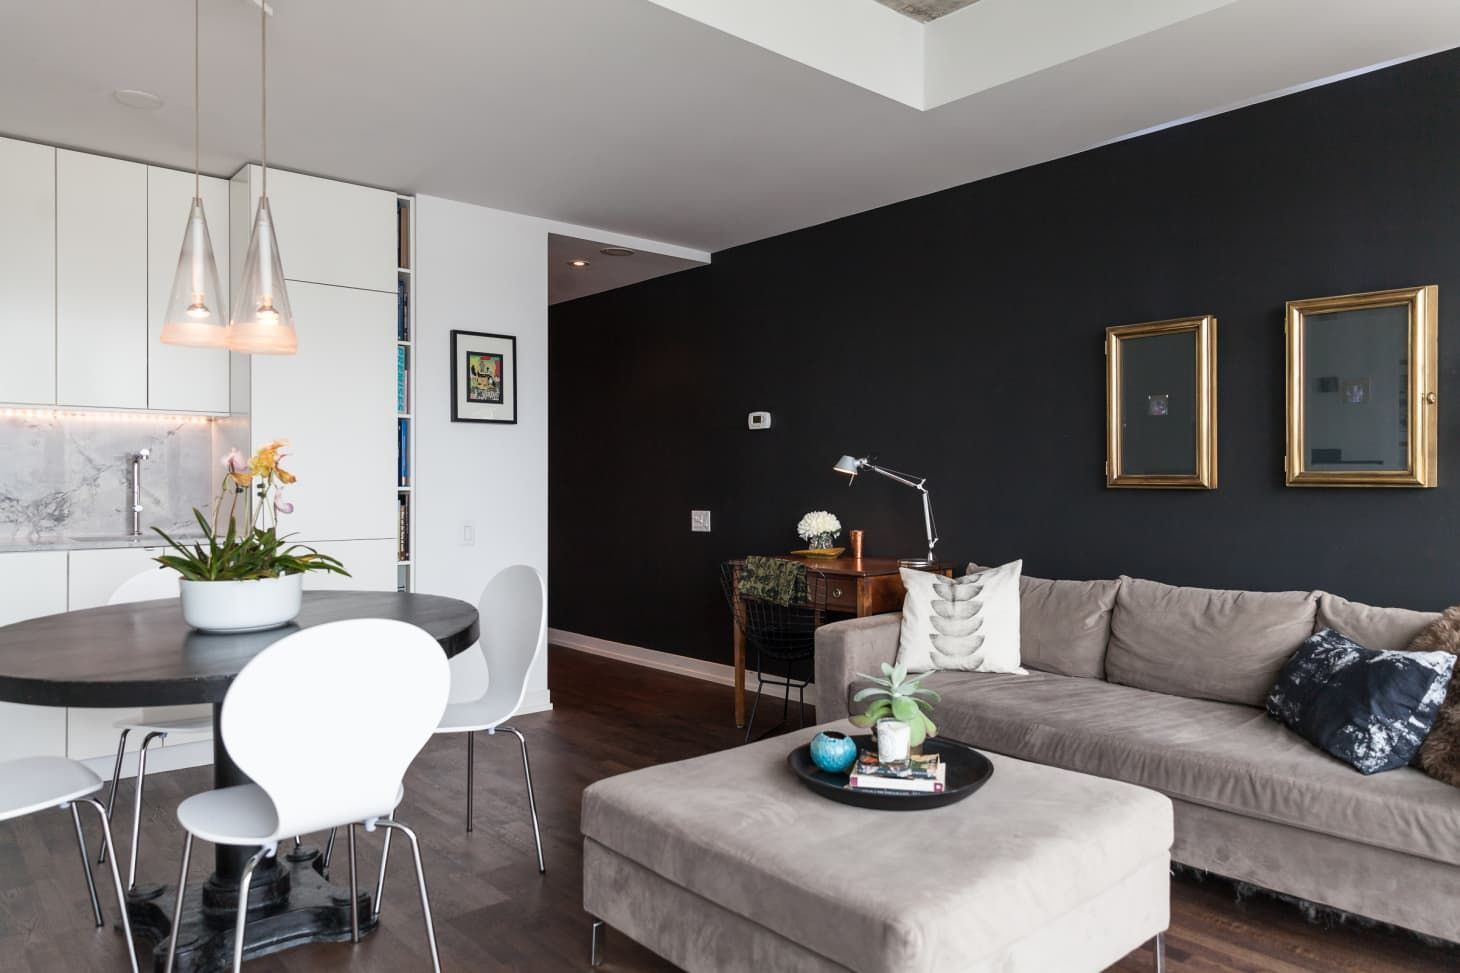 Black Walls Instant Grown Up Home Here S How To Make Them Work Black Walls Living Room Black Accent Wall Living Room Stone Wall Living Room